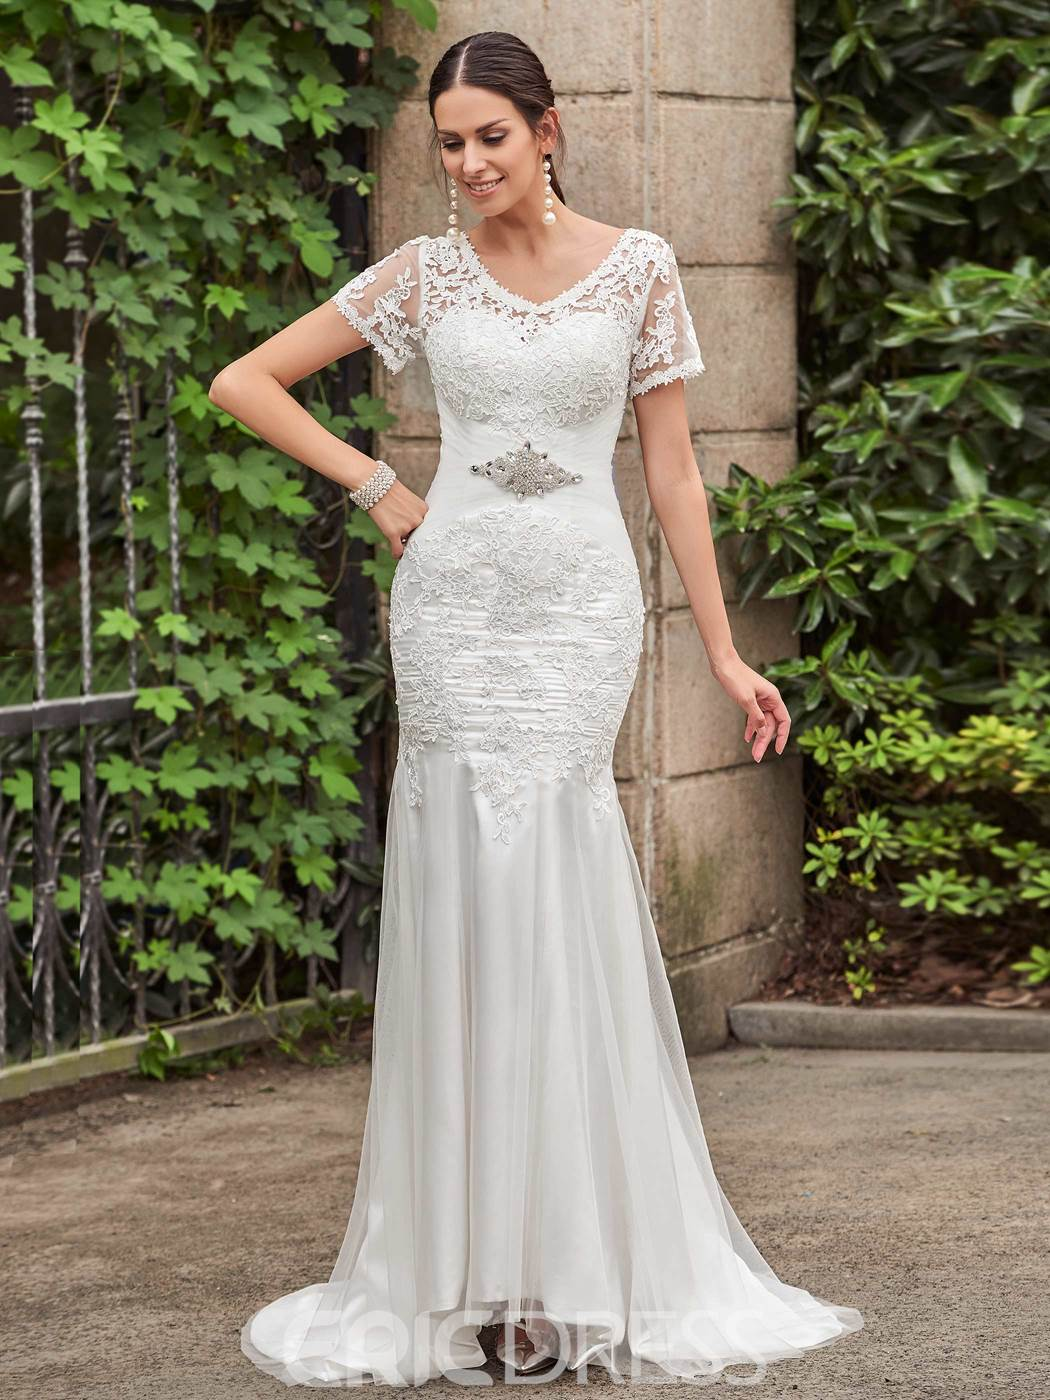 Ericdress Classic V Neck Short Sleeves Lace Mermaid Wedding Dress